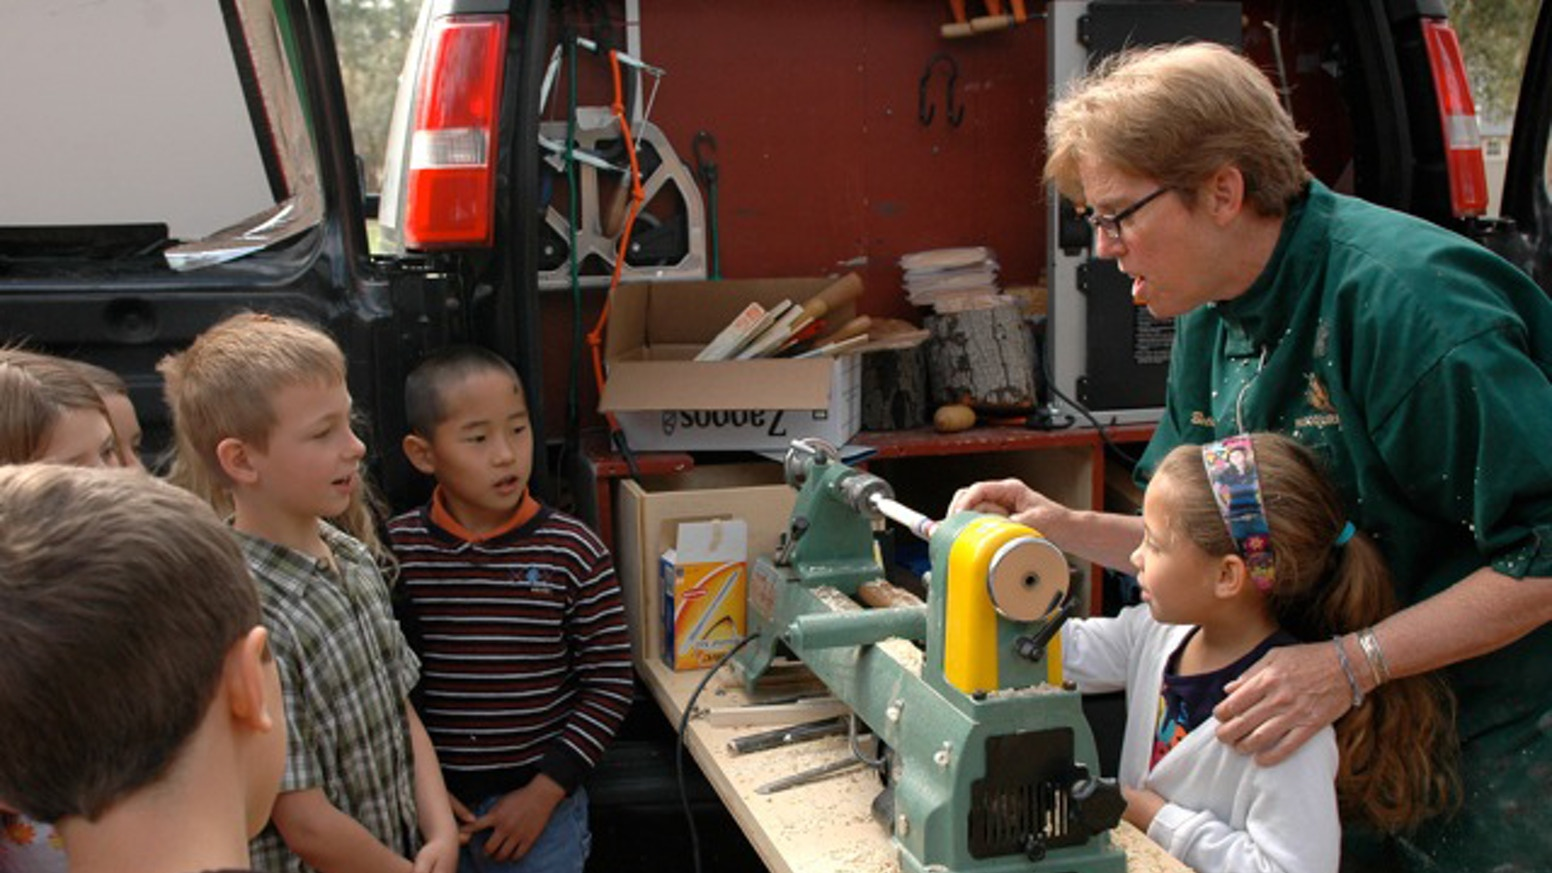 Turning Around Boston Mobile Woodworking Classes For Kids By The